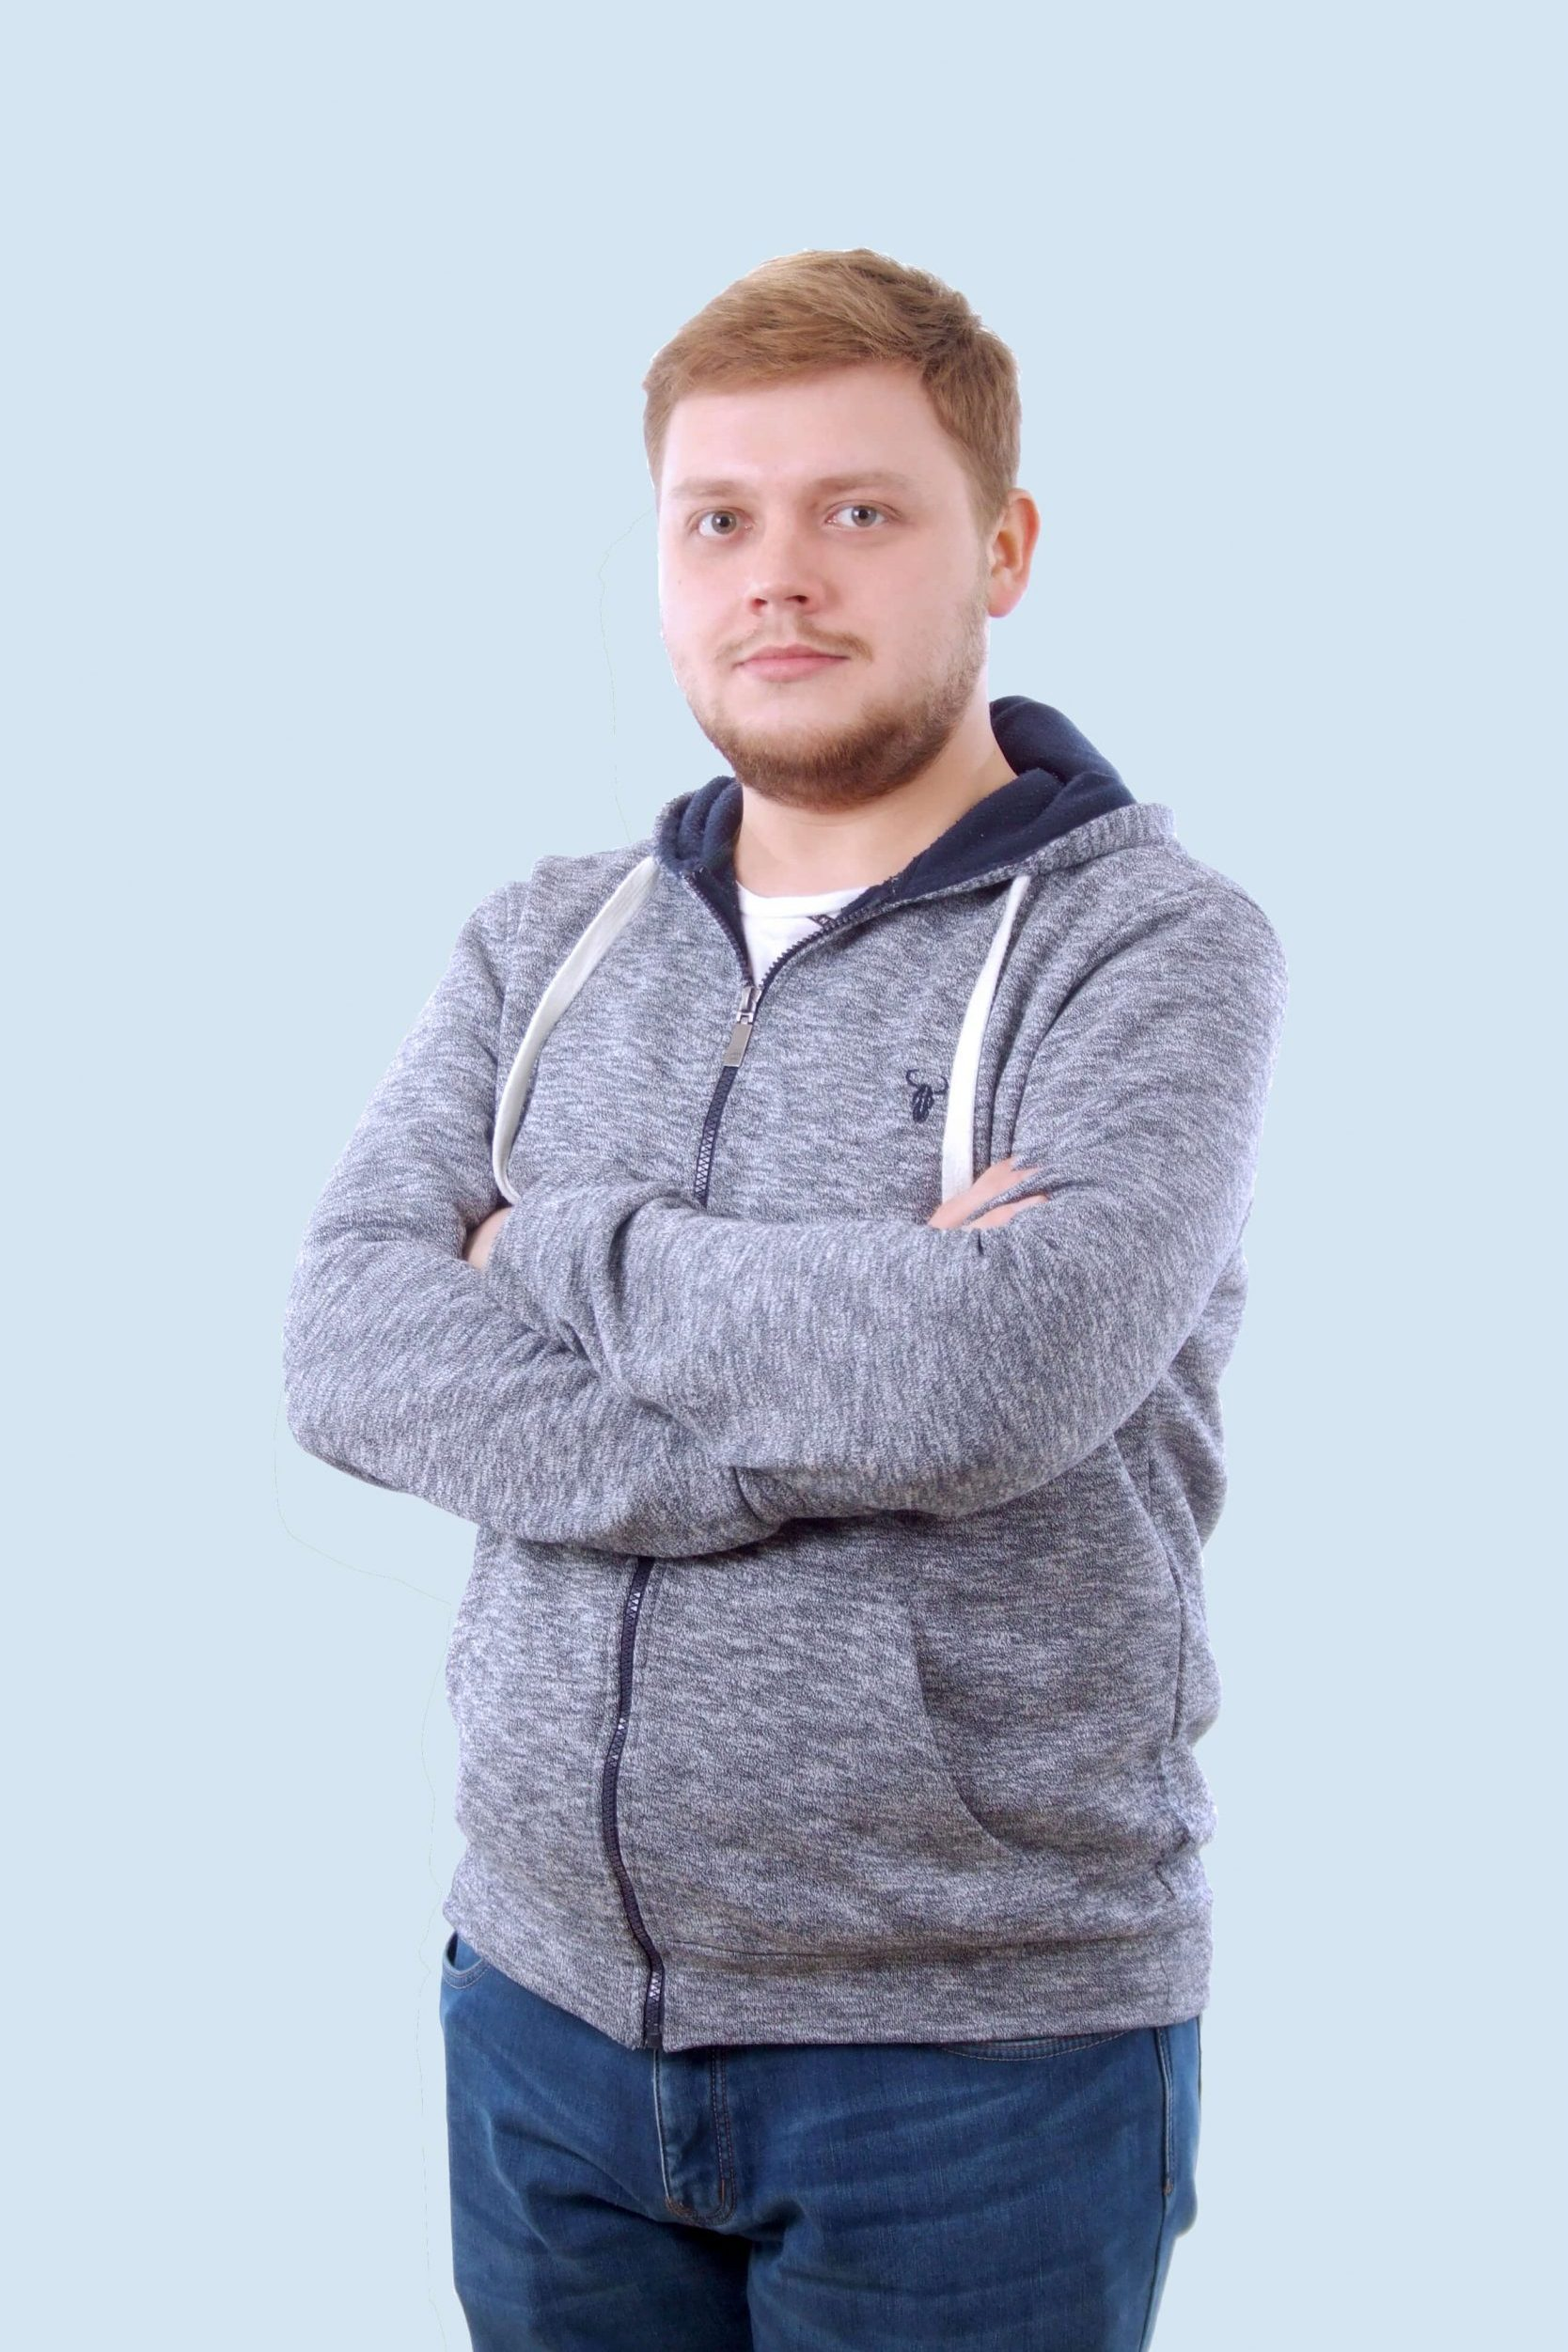 Yevhen is a Django/ Python developer at Jellyfish.tech